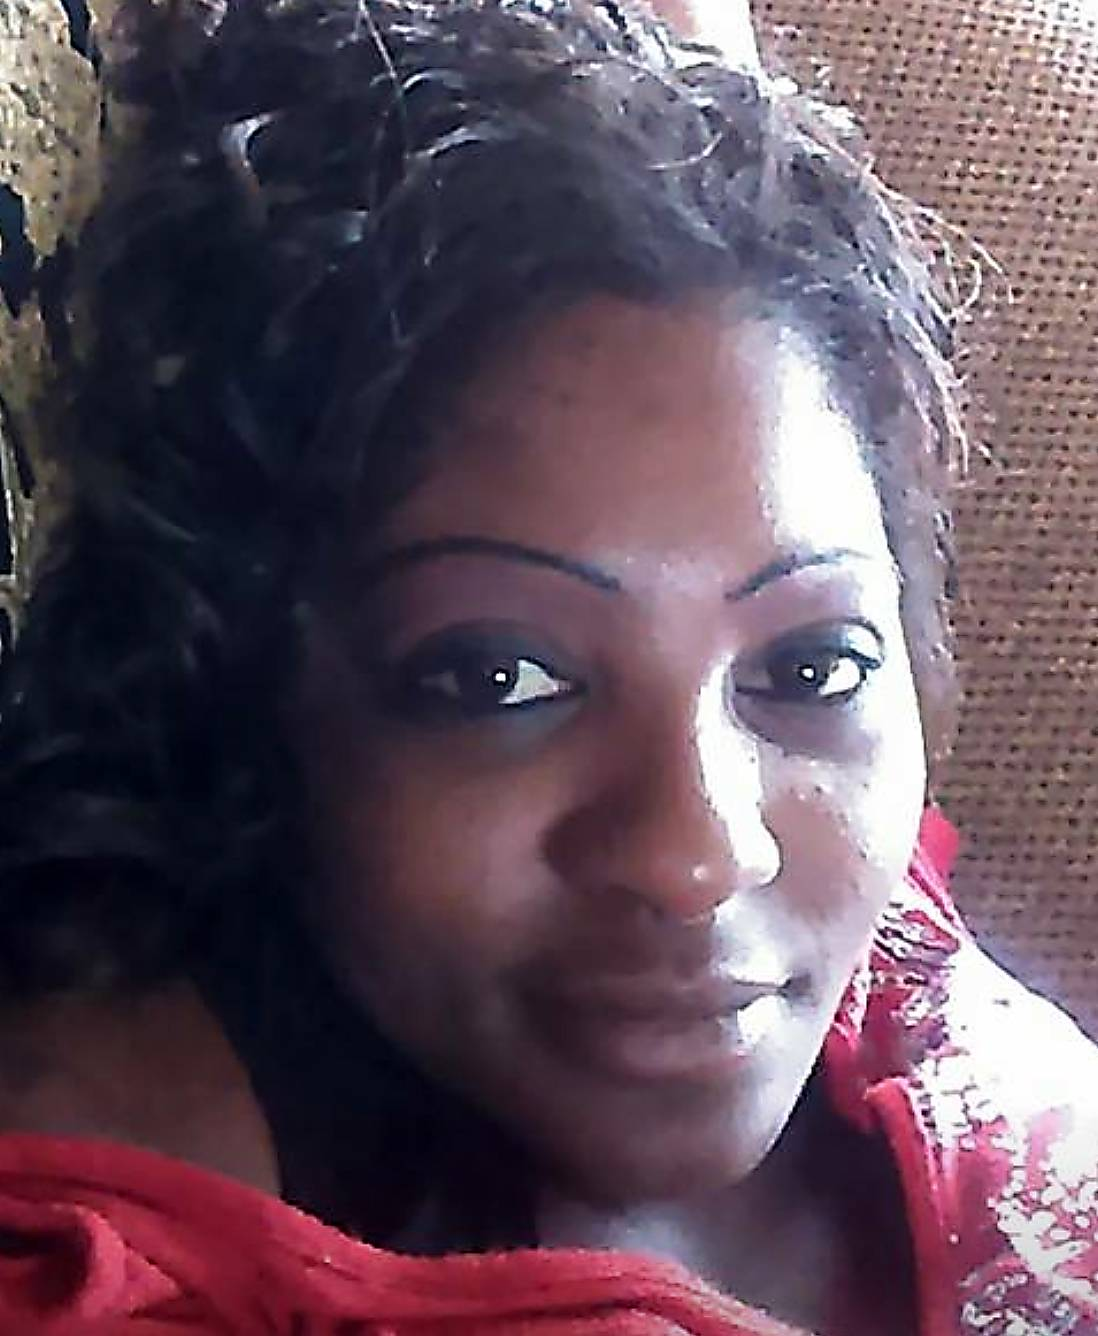 Decynthia Clements of Elgin was shot and killed March 12 by an Elgin police officer. The investigation is now in the hands of the Cook County state's attorney's office.